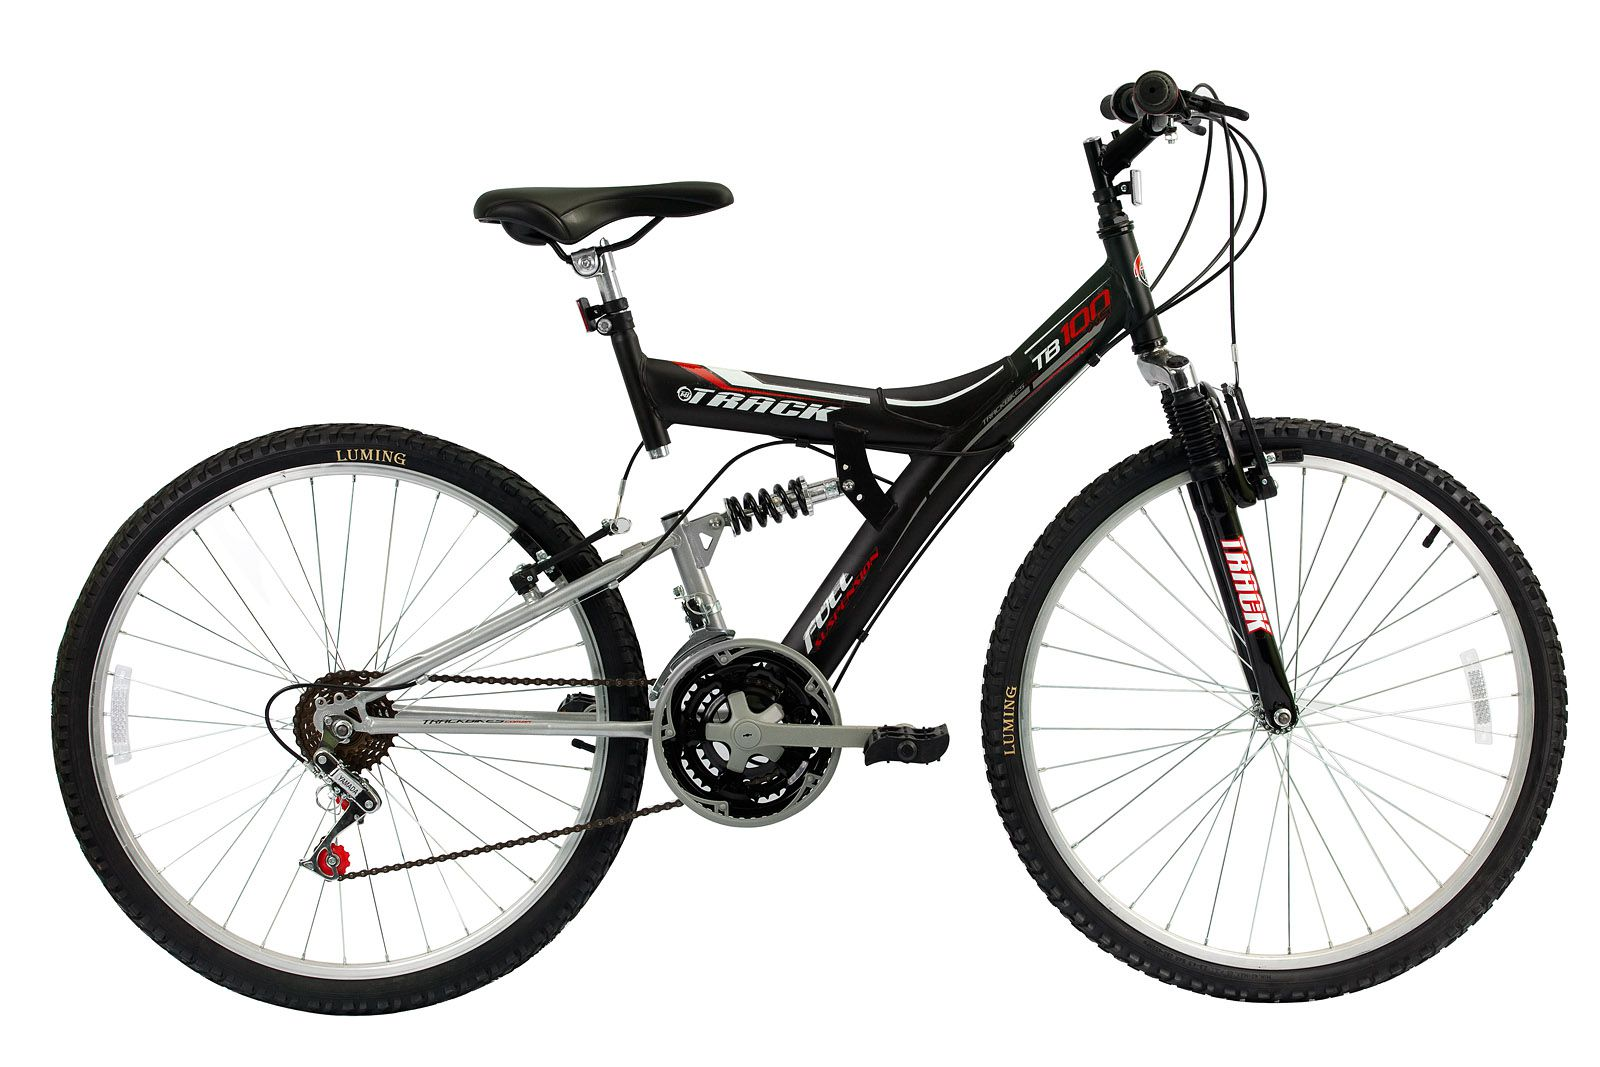 Bicicleta Track Bikes TB 100 Mountain Bike Aro 26 - PH